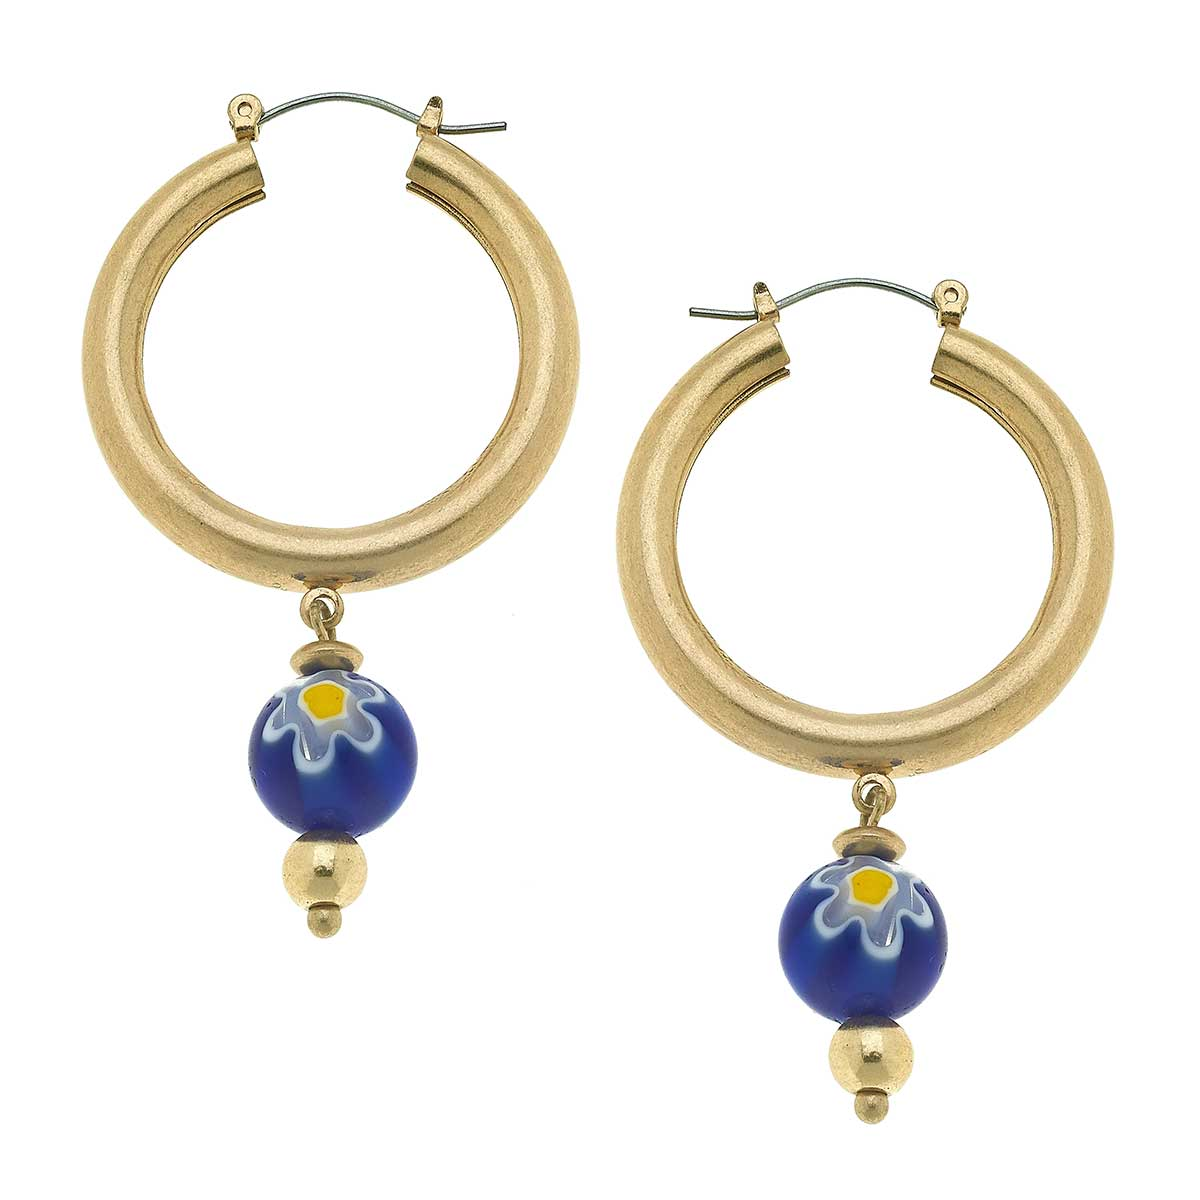 Millefiori Glass Bead Drop Hoop Earrings in Blue